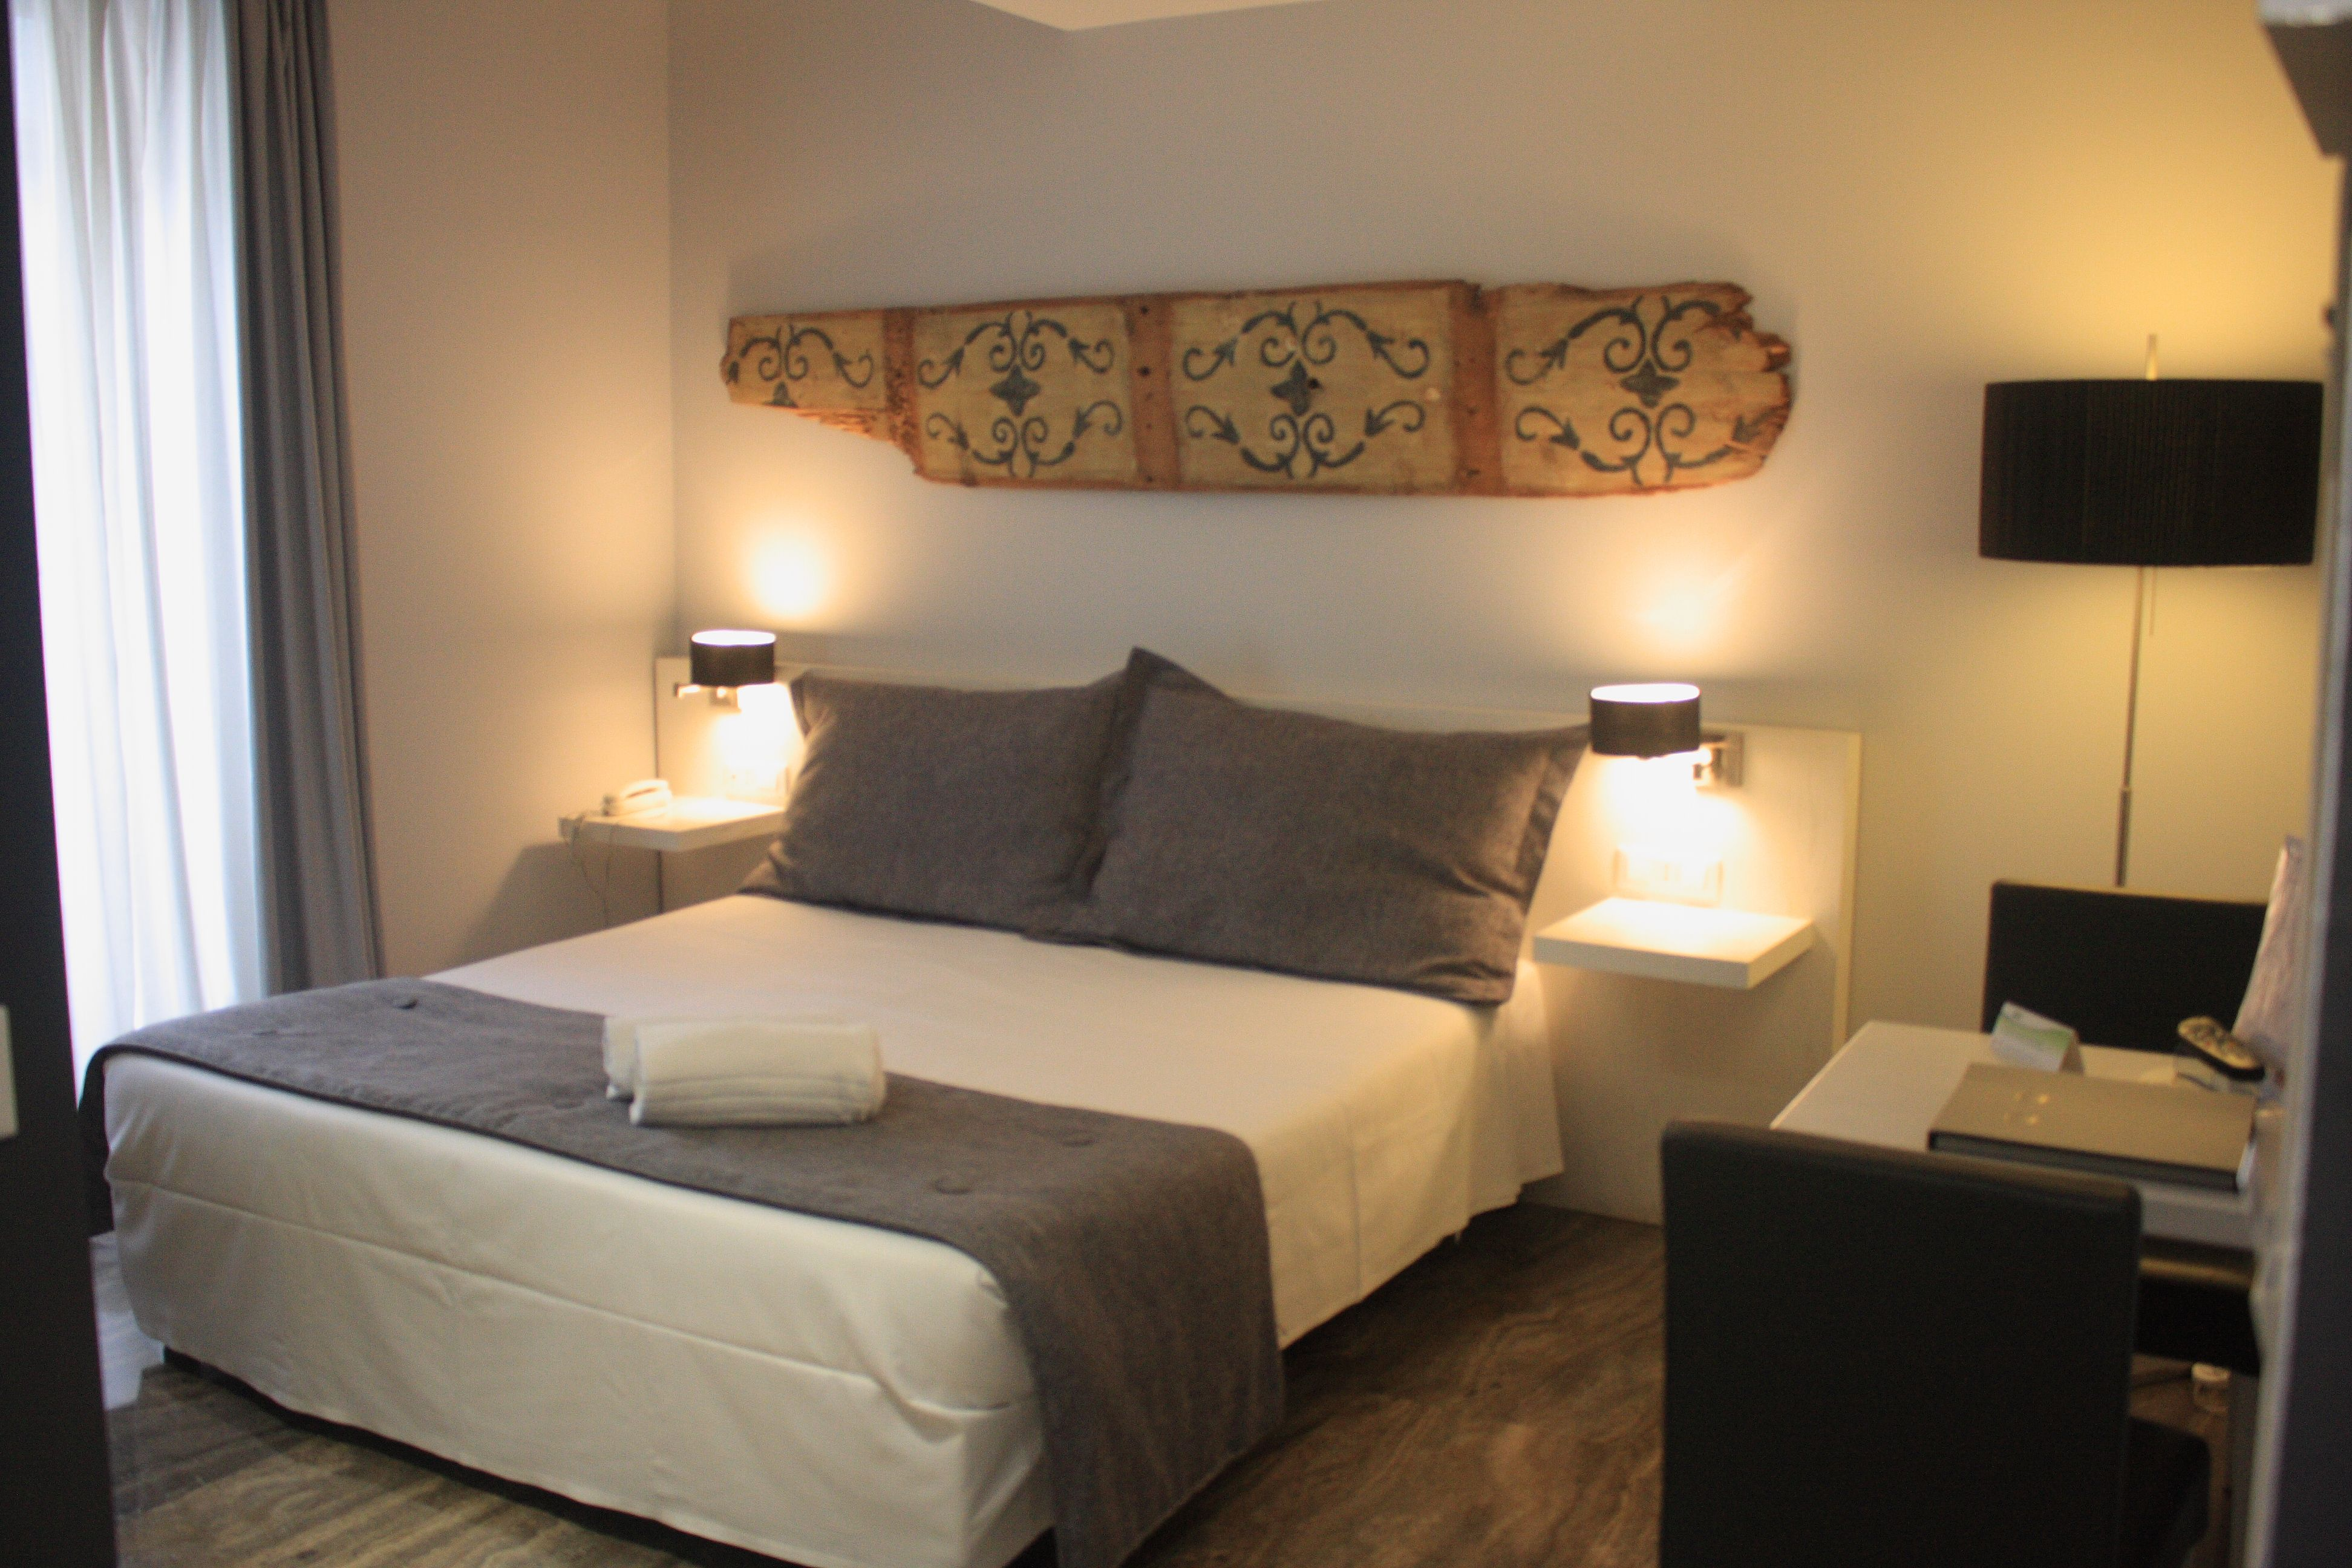 Are you planning your #business trip to #Palermo? Come to discover the comfort of our rooms and all the services reserved to the business guests. The offer includes a 10,00 € discount per day, free parking with valet and the opportunity to access the Spa for free from 20:00 to 21:00 h, every day. www.quintocantohotel.com